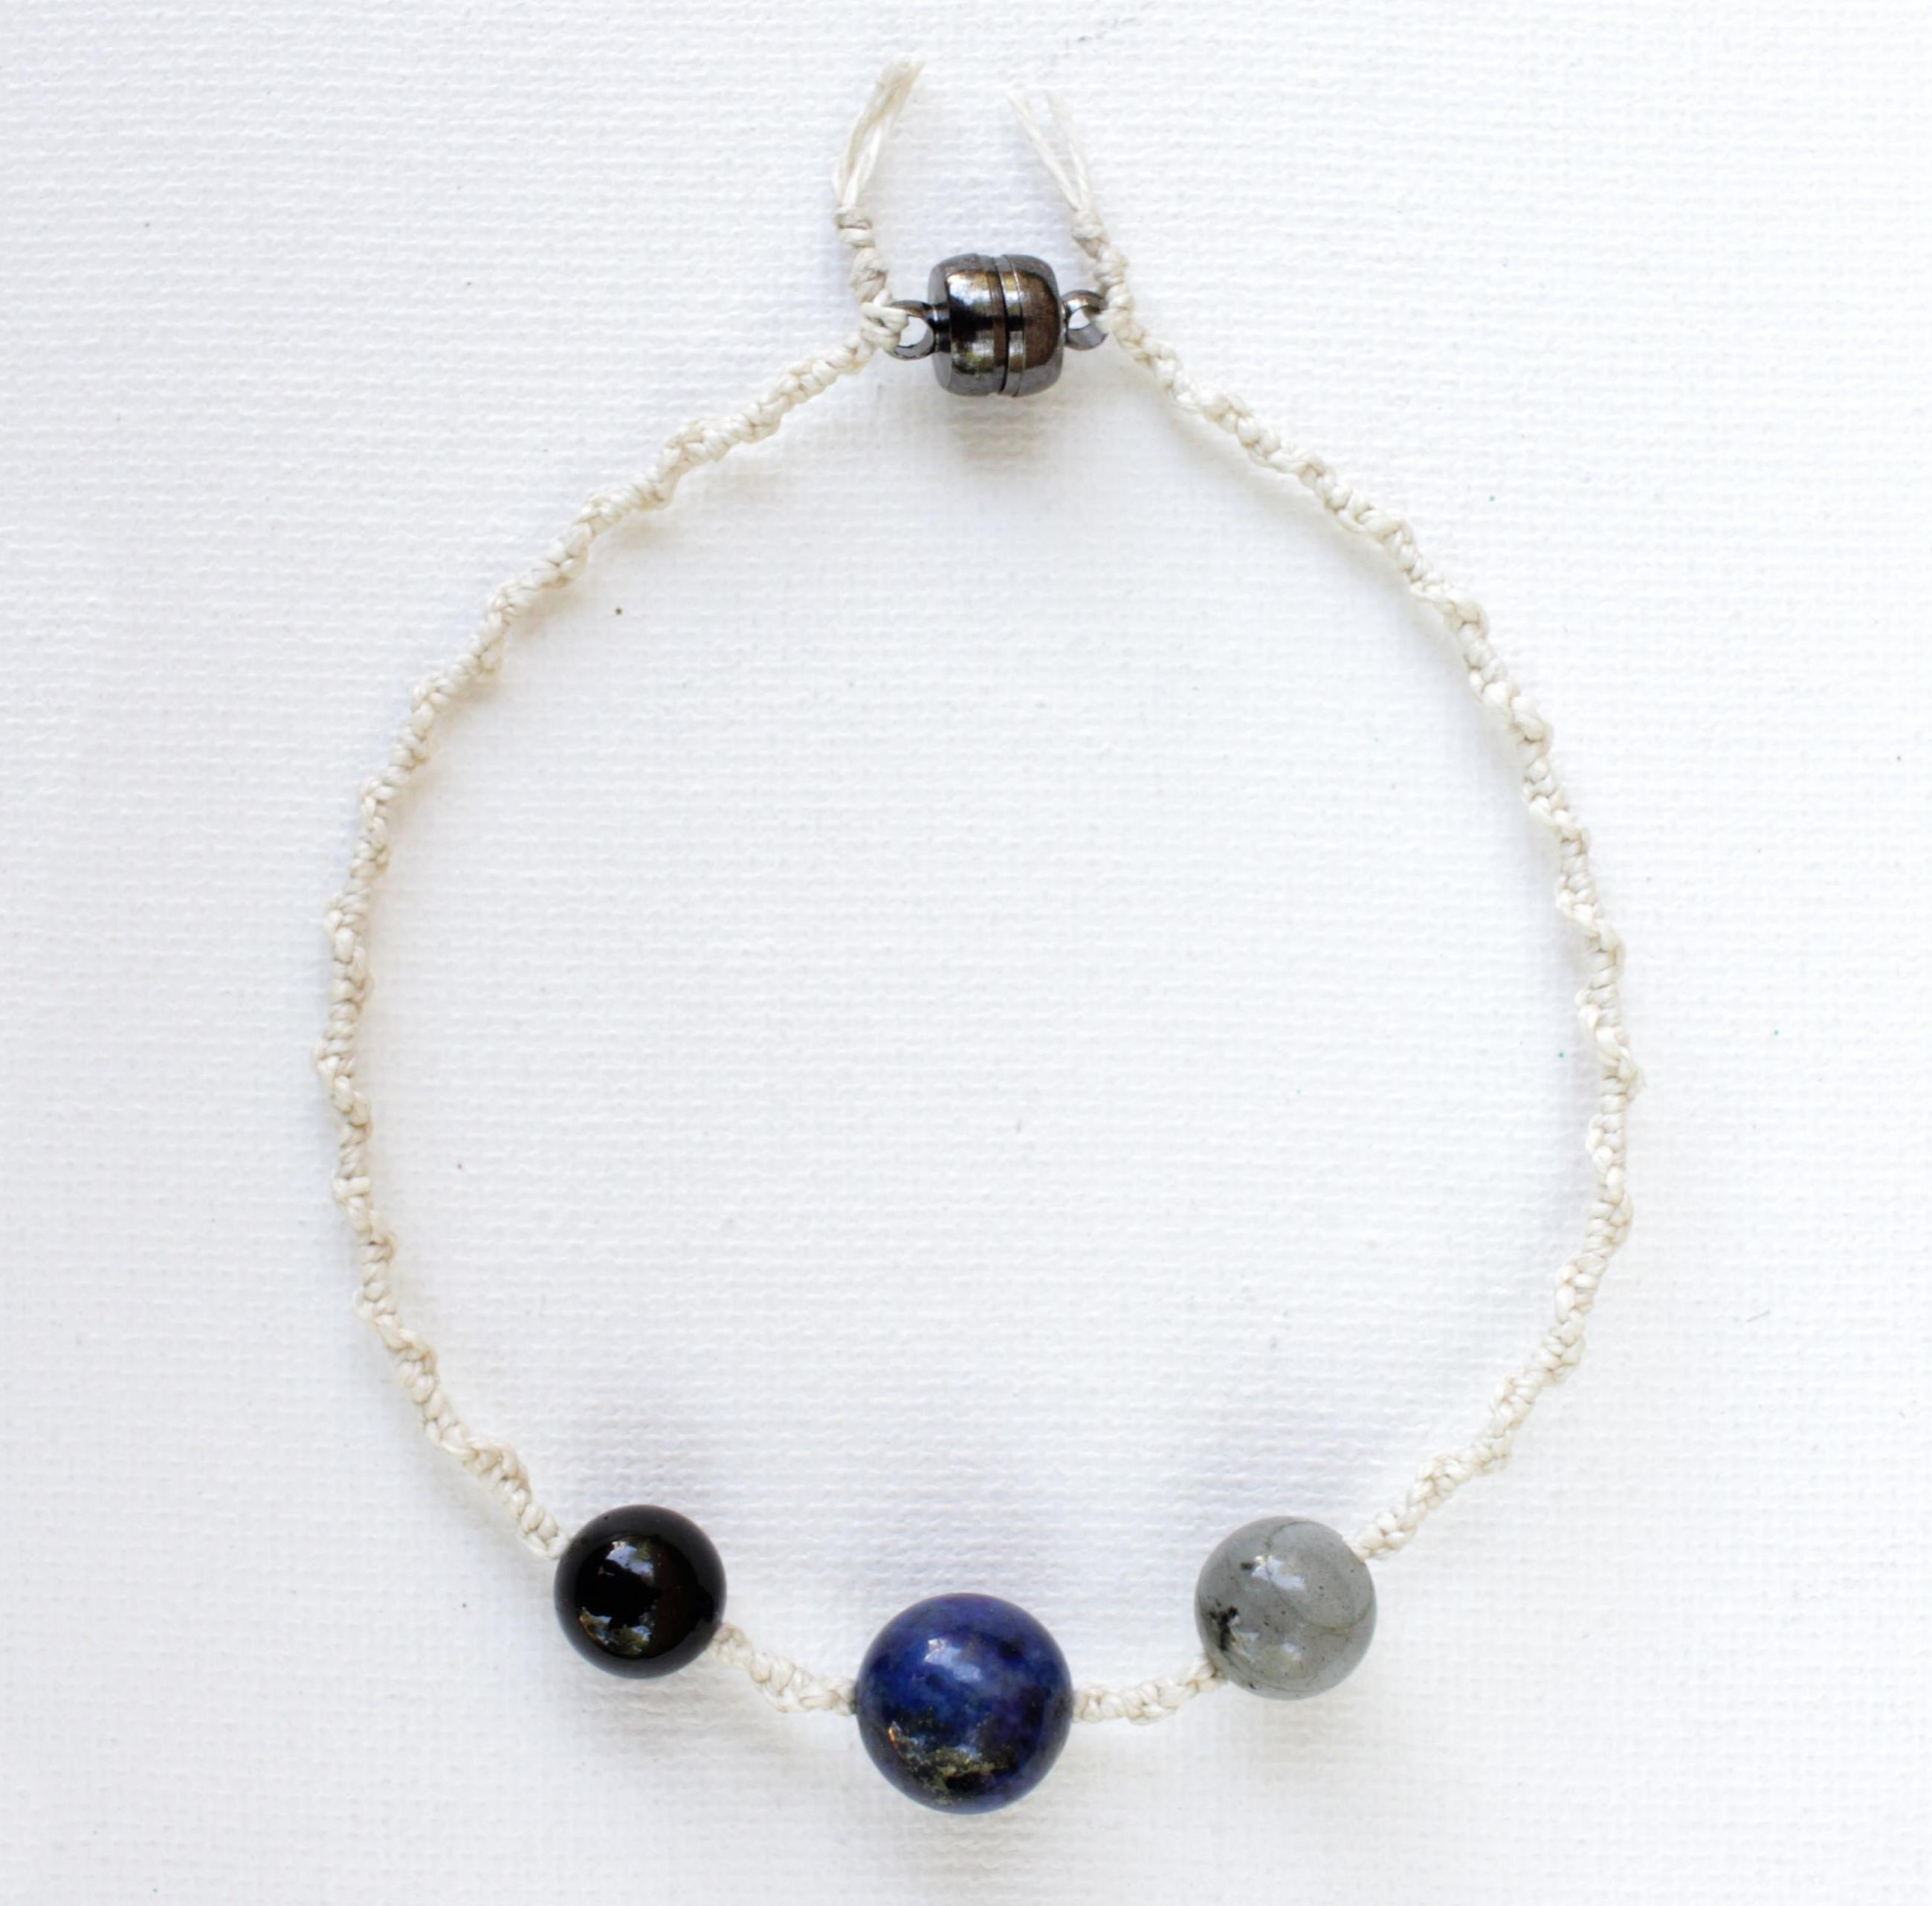 Mercury Retrograde Protection Crystals Hemp Macramé Bracelet Anklet | Lapis lazuli | Labradorite | Black Tourmaline | Made to Order Gift